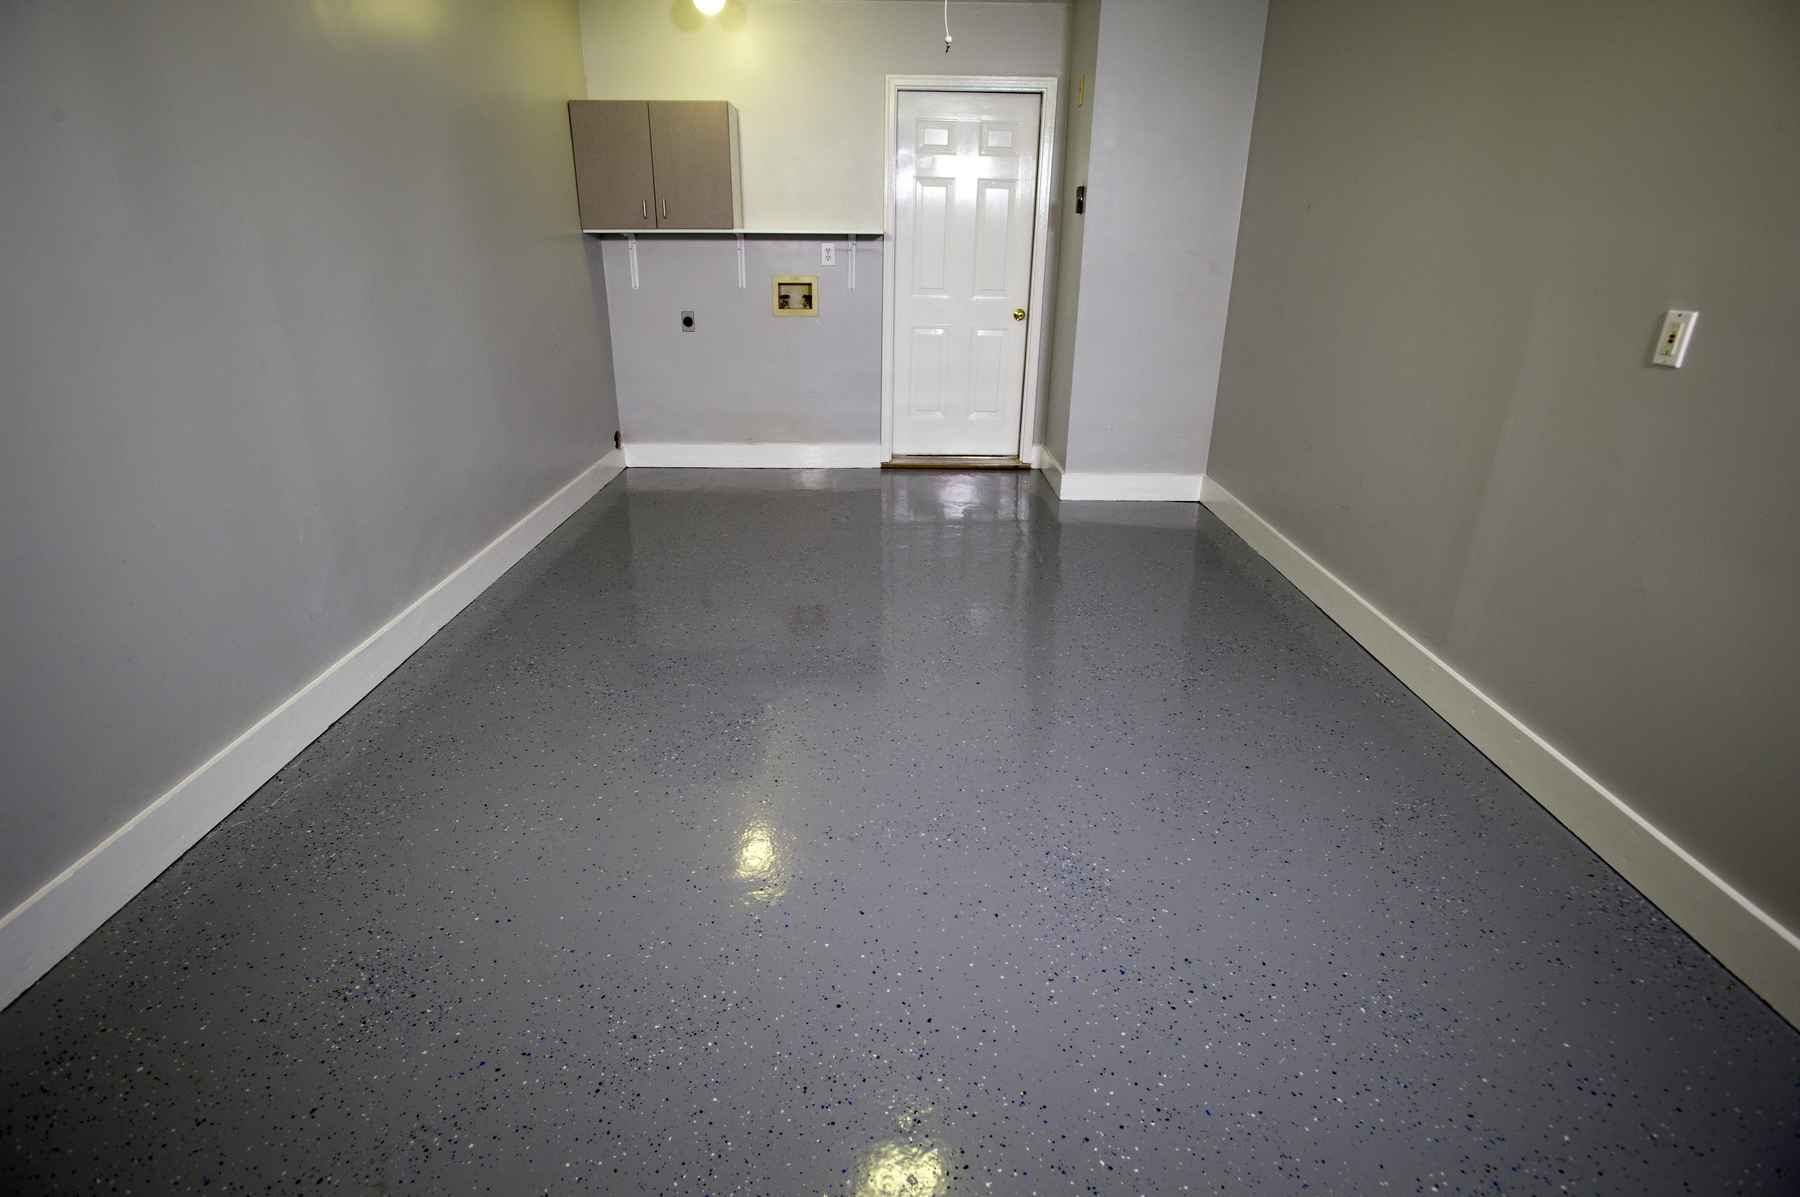 Garage Floor Coating: After